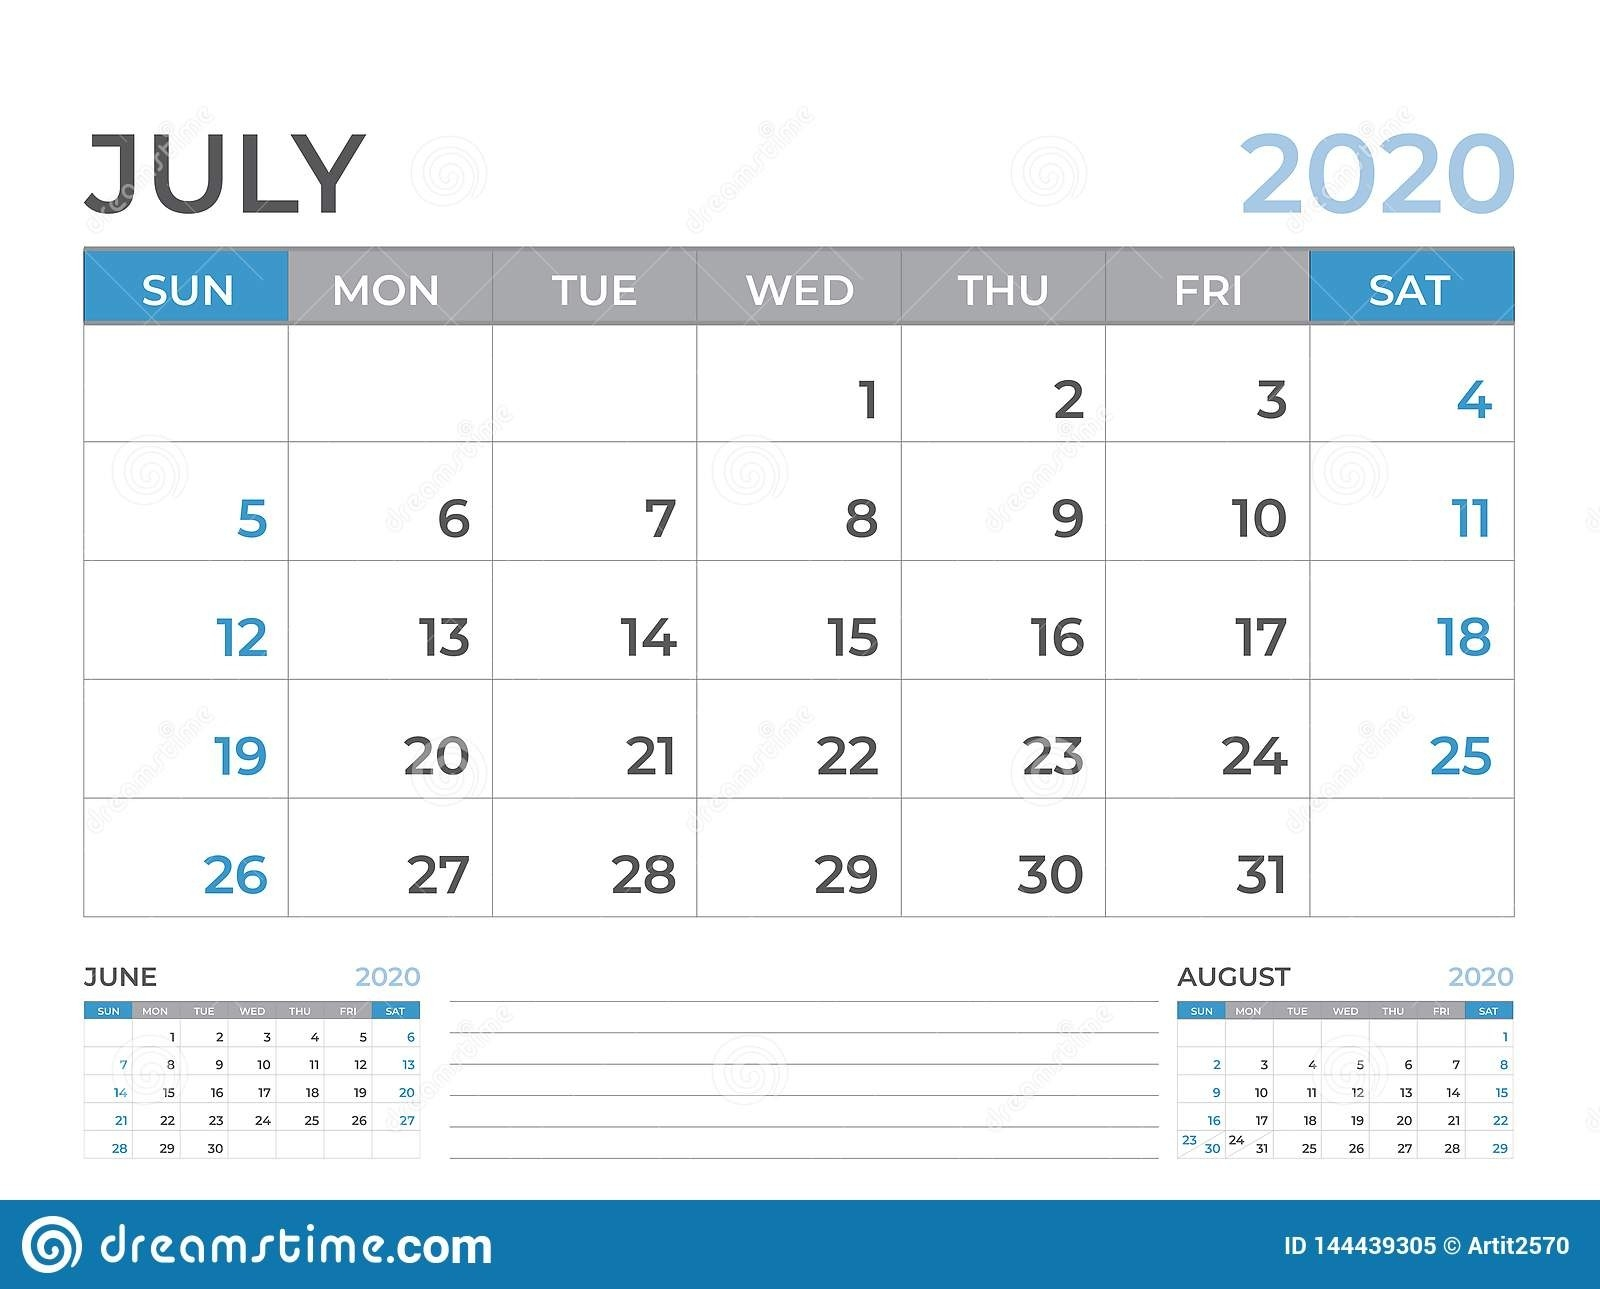 June 2020 Calendar Template, Desk Calendar Layout Size 8 X 6  Full Size Calendar 2020